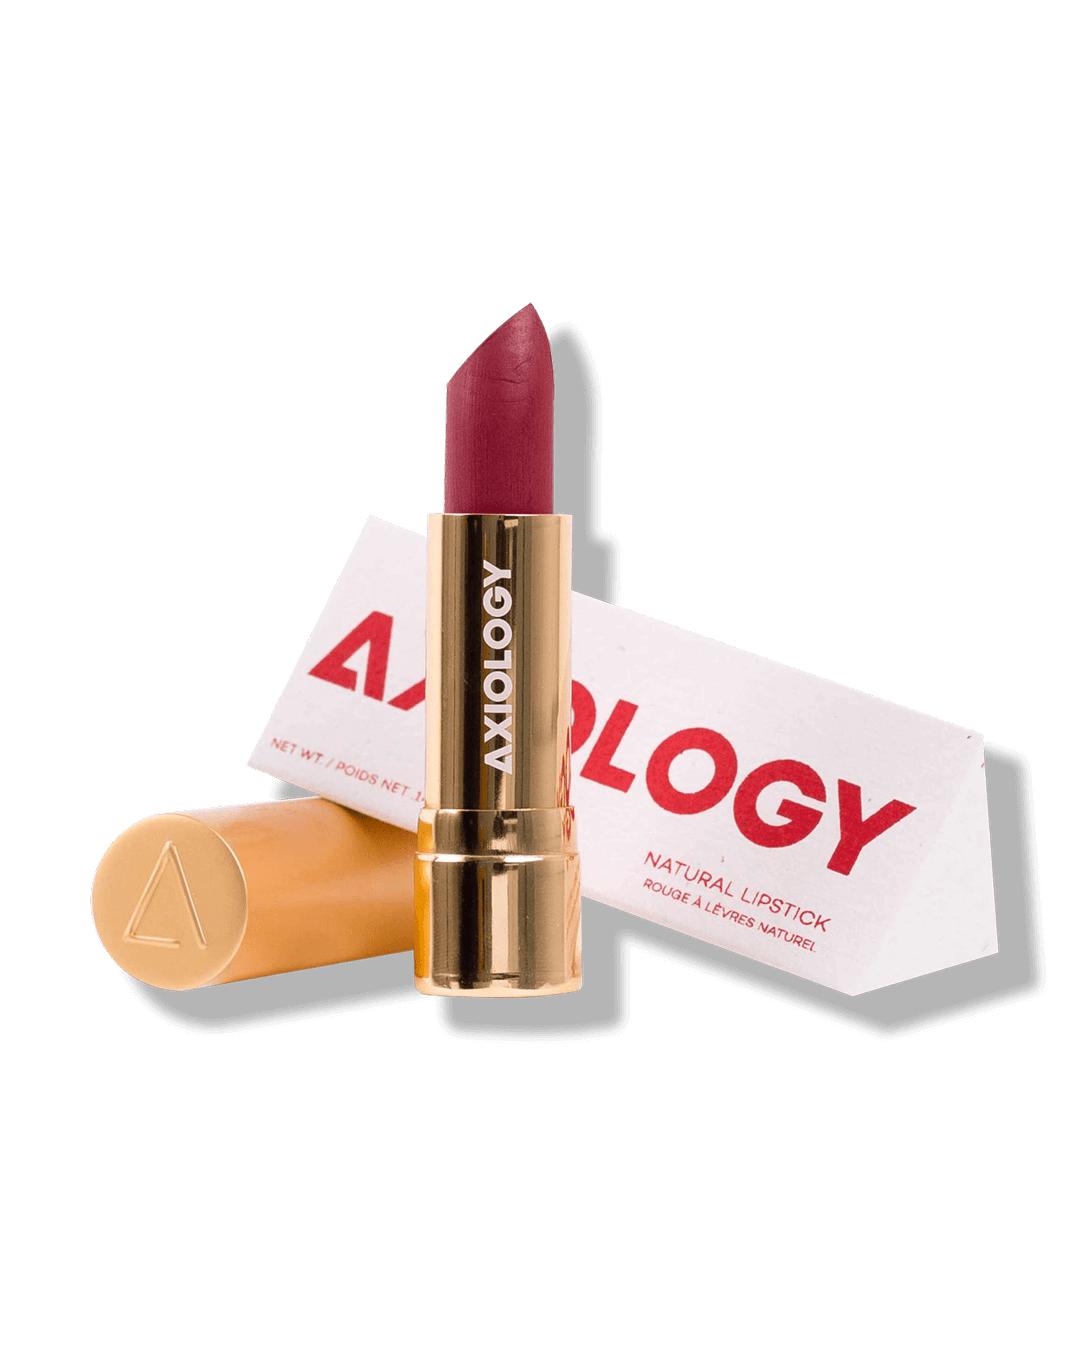 The Bullet Lipstick Clarity